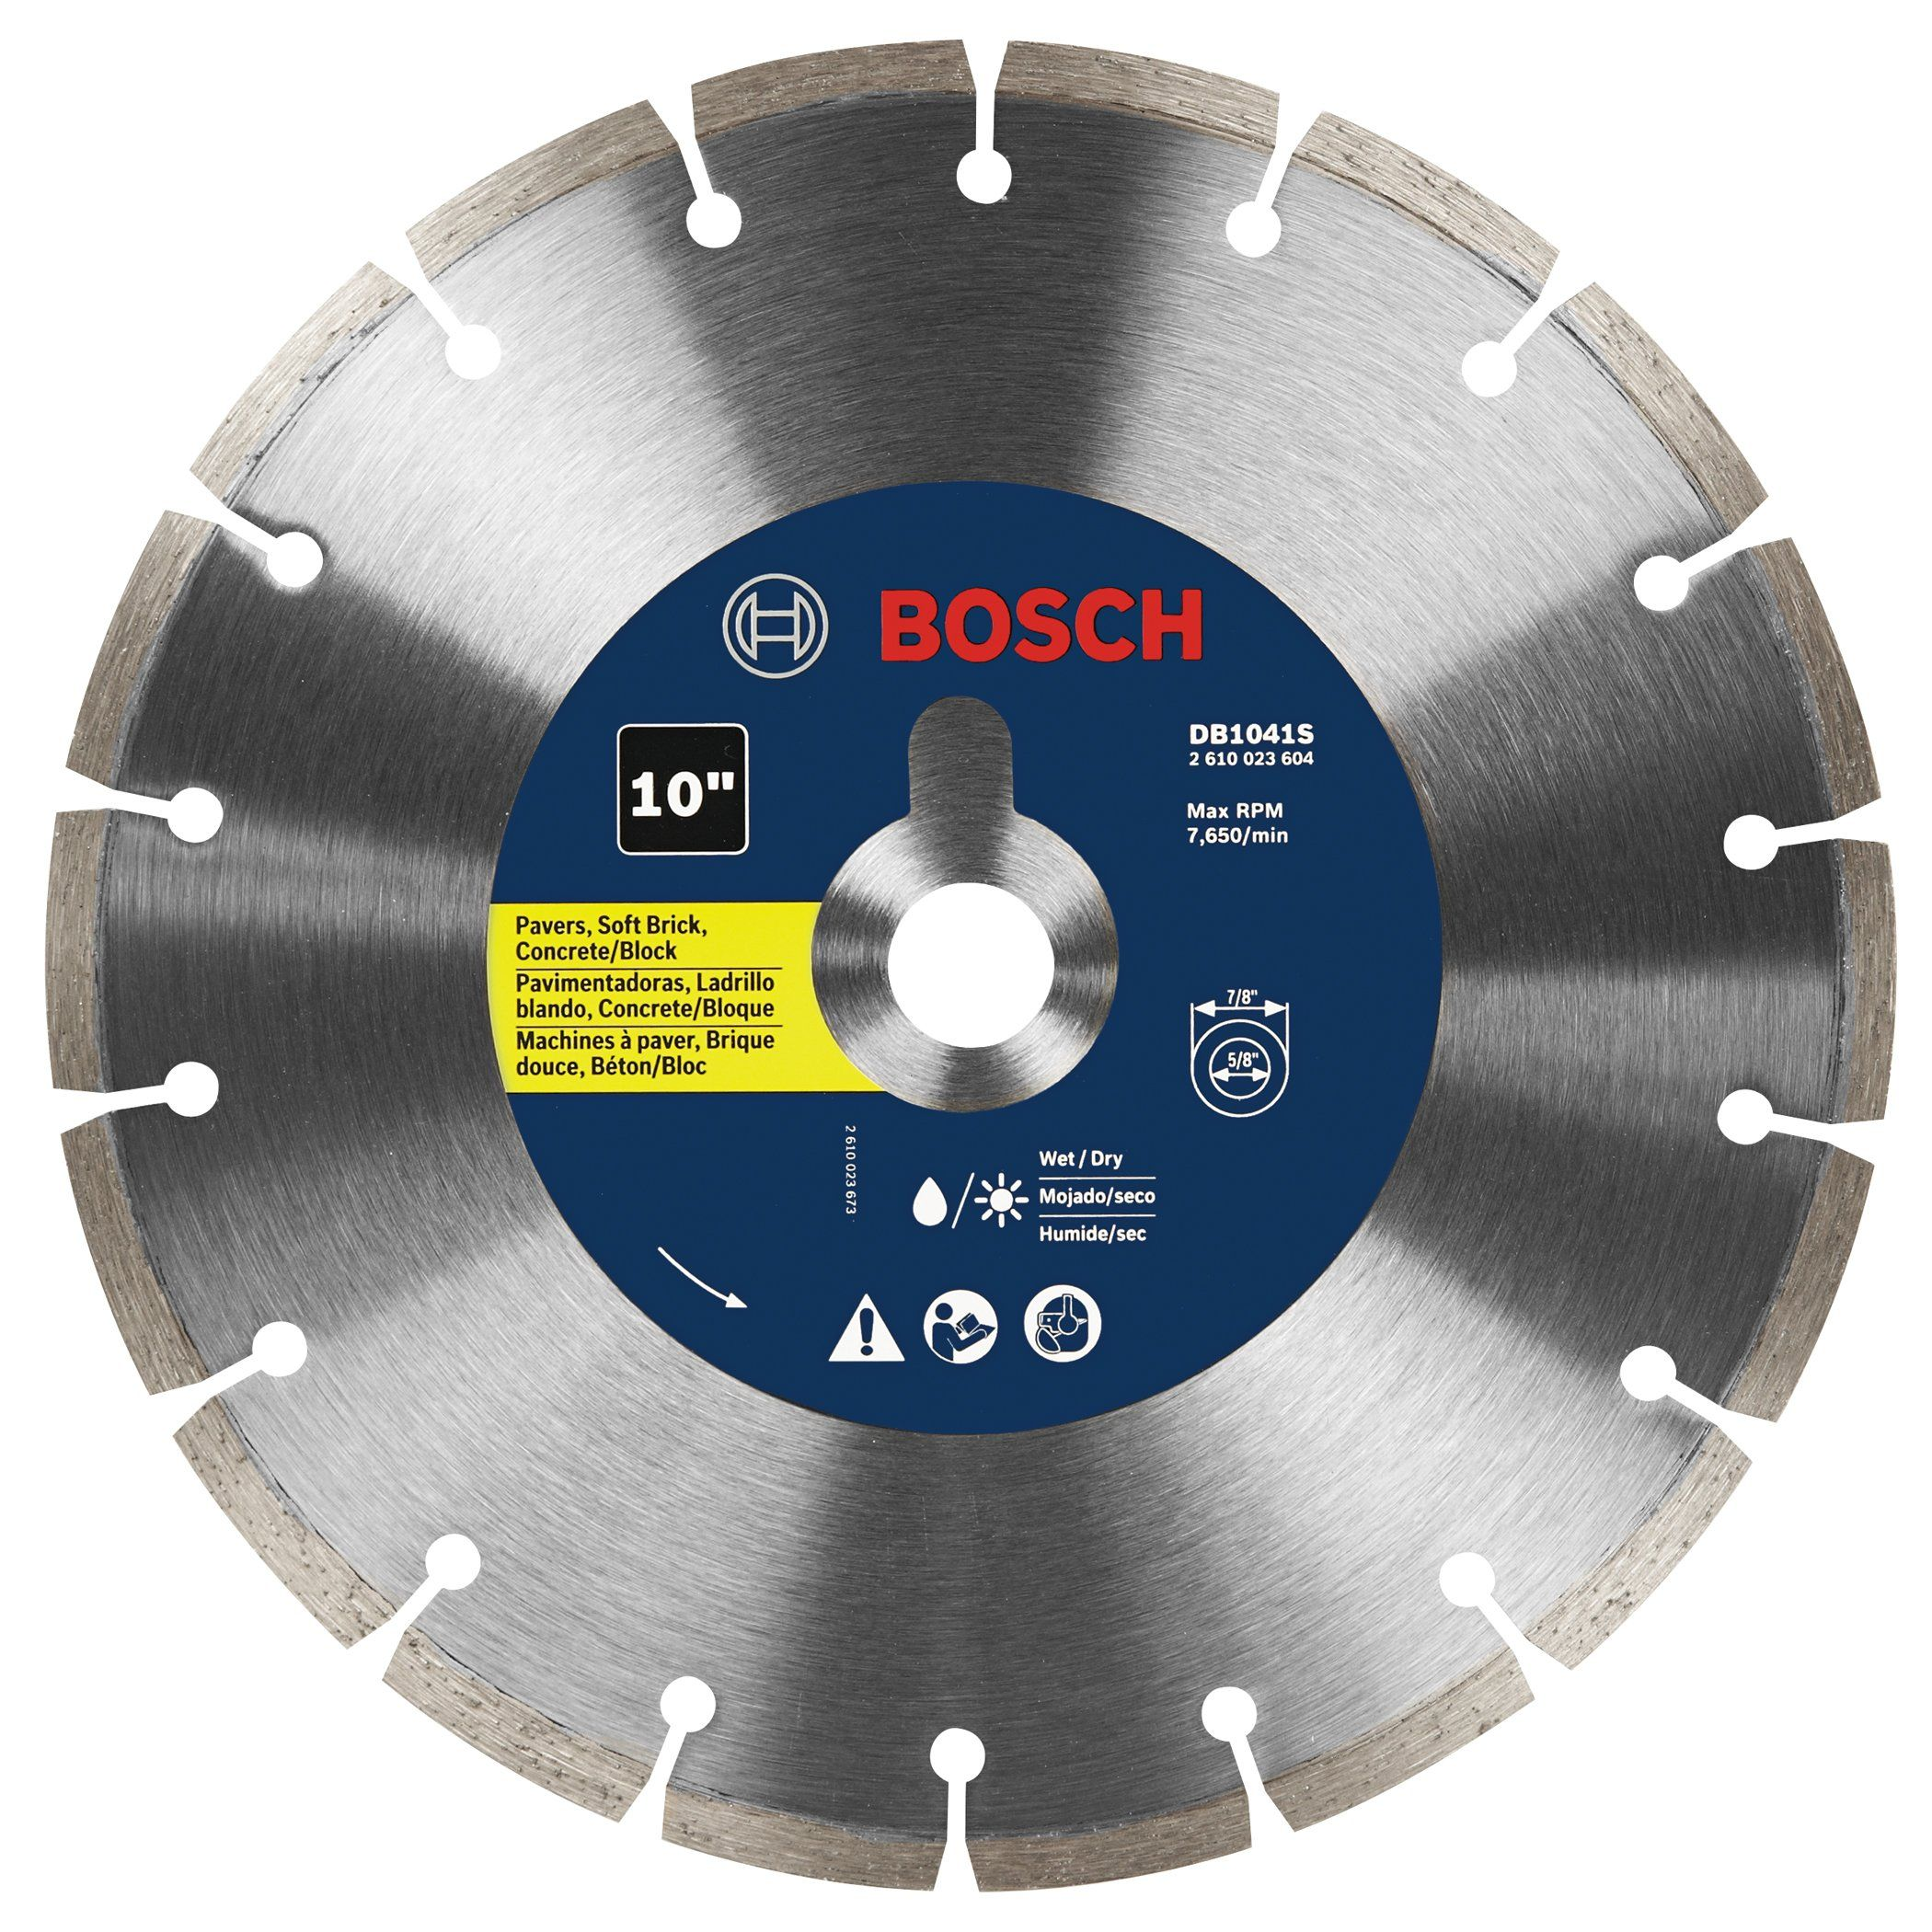 Bosch Db1041s 10inch Segmented Rim Diamond Blade You Can Get Extra Information At The Image Web Link Diamond Blades Household Gadgets 10 Things